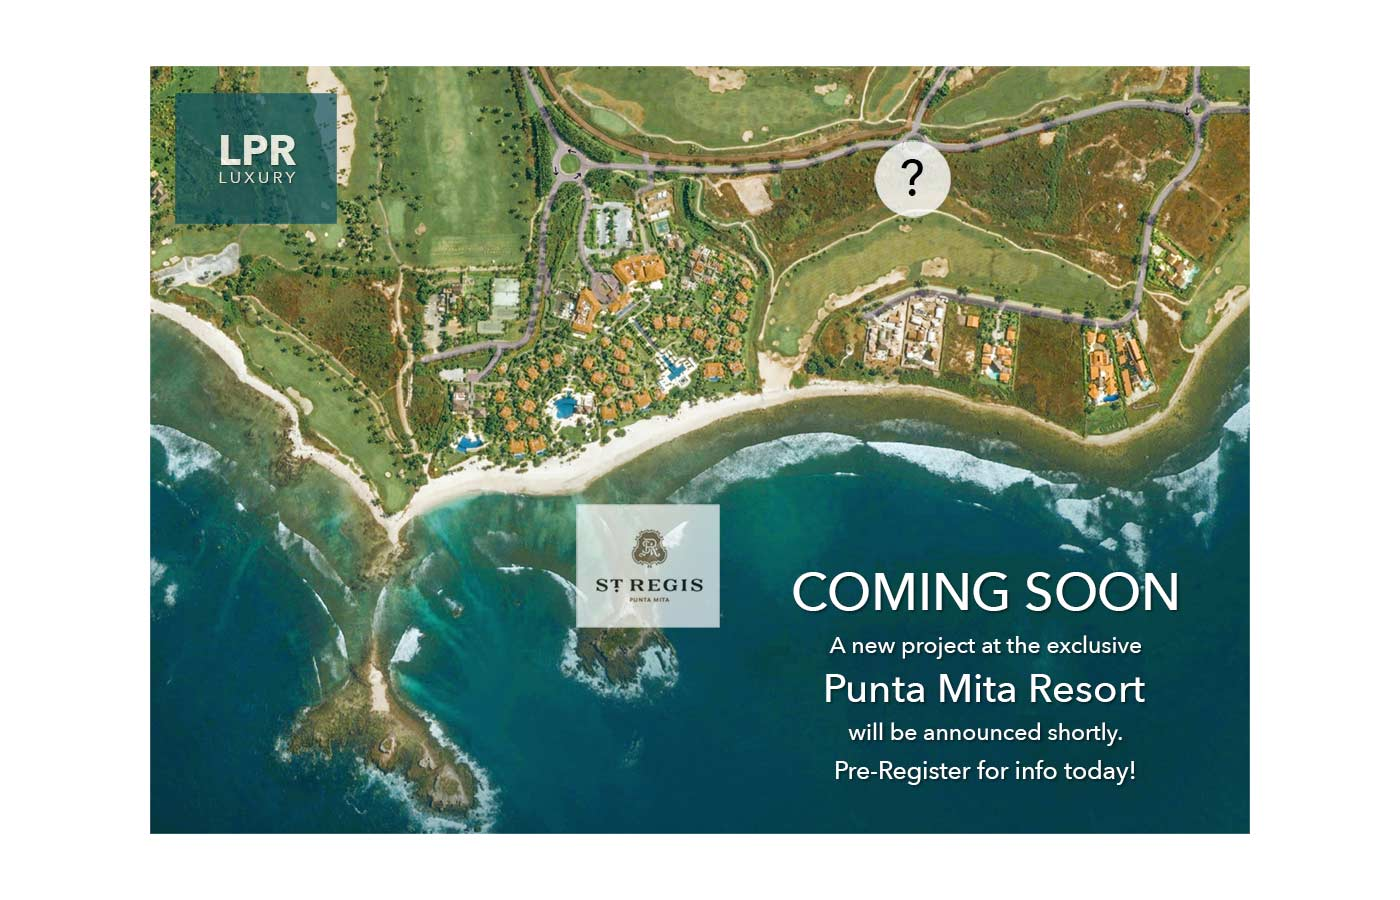 We offer you the first look at what is happening in Punta Mita. Still a secret and in the planning stages, there are several reasons why we LOVE this new project. With privileged access and proximity to the St. Regis, Punta Mita amenities, we are excited about this one. Register now for full info package about this new development just behind the St. Regis Resort at the Ultra Exclusive Punta Mita Resort.